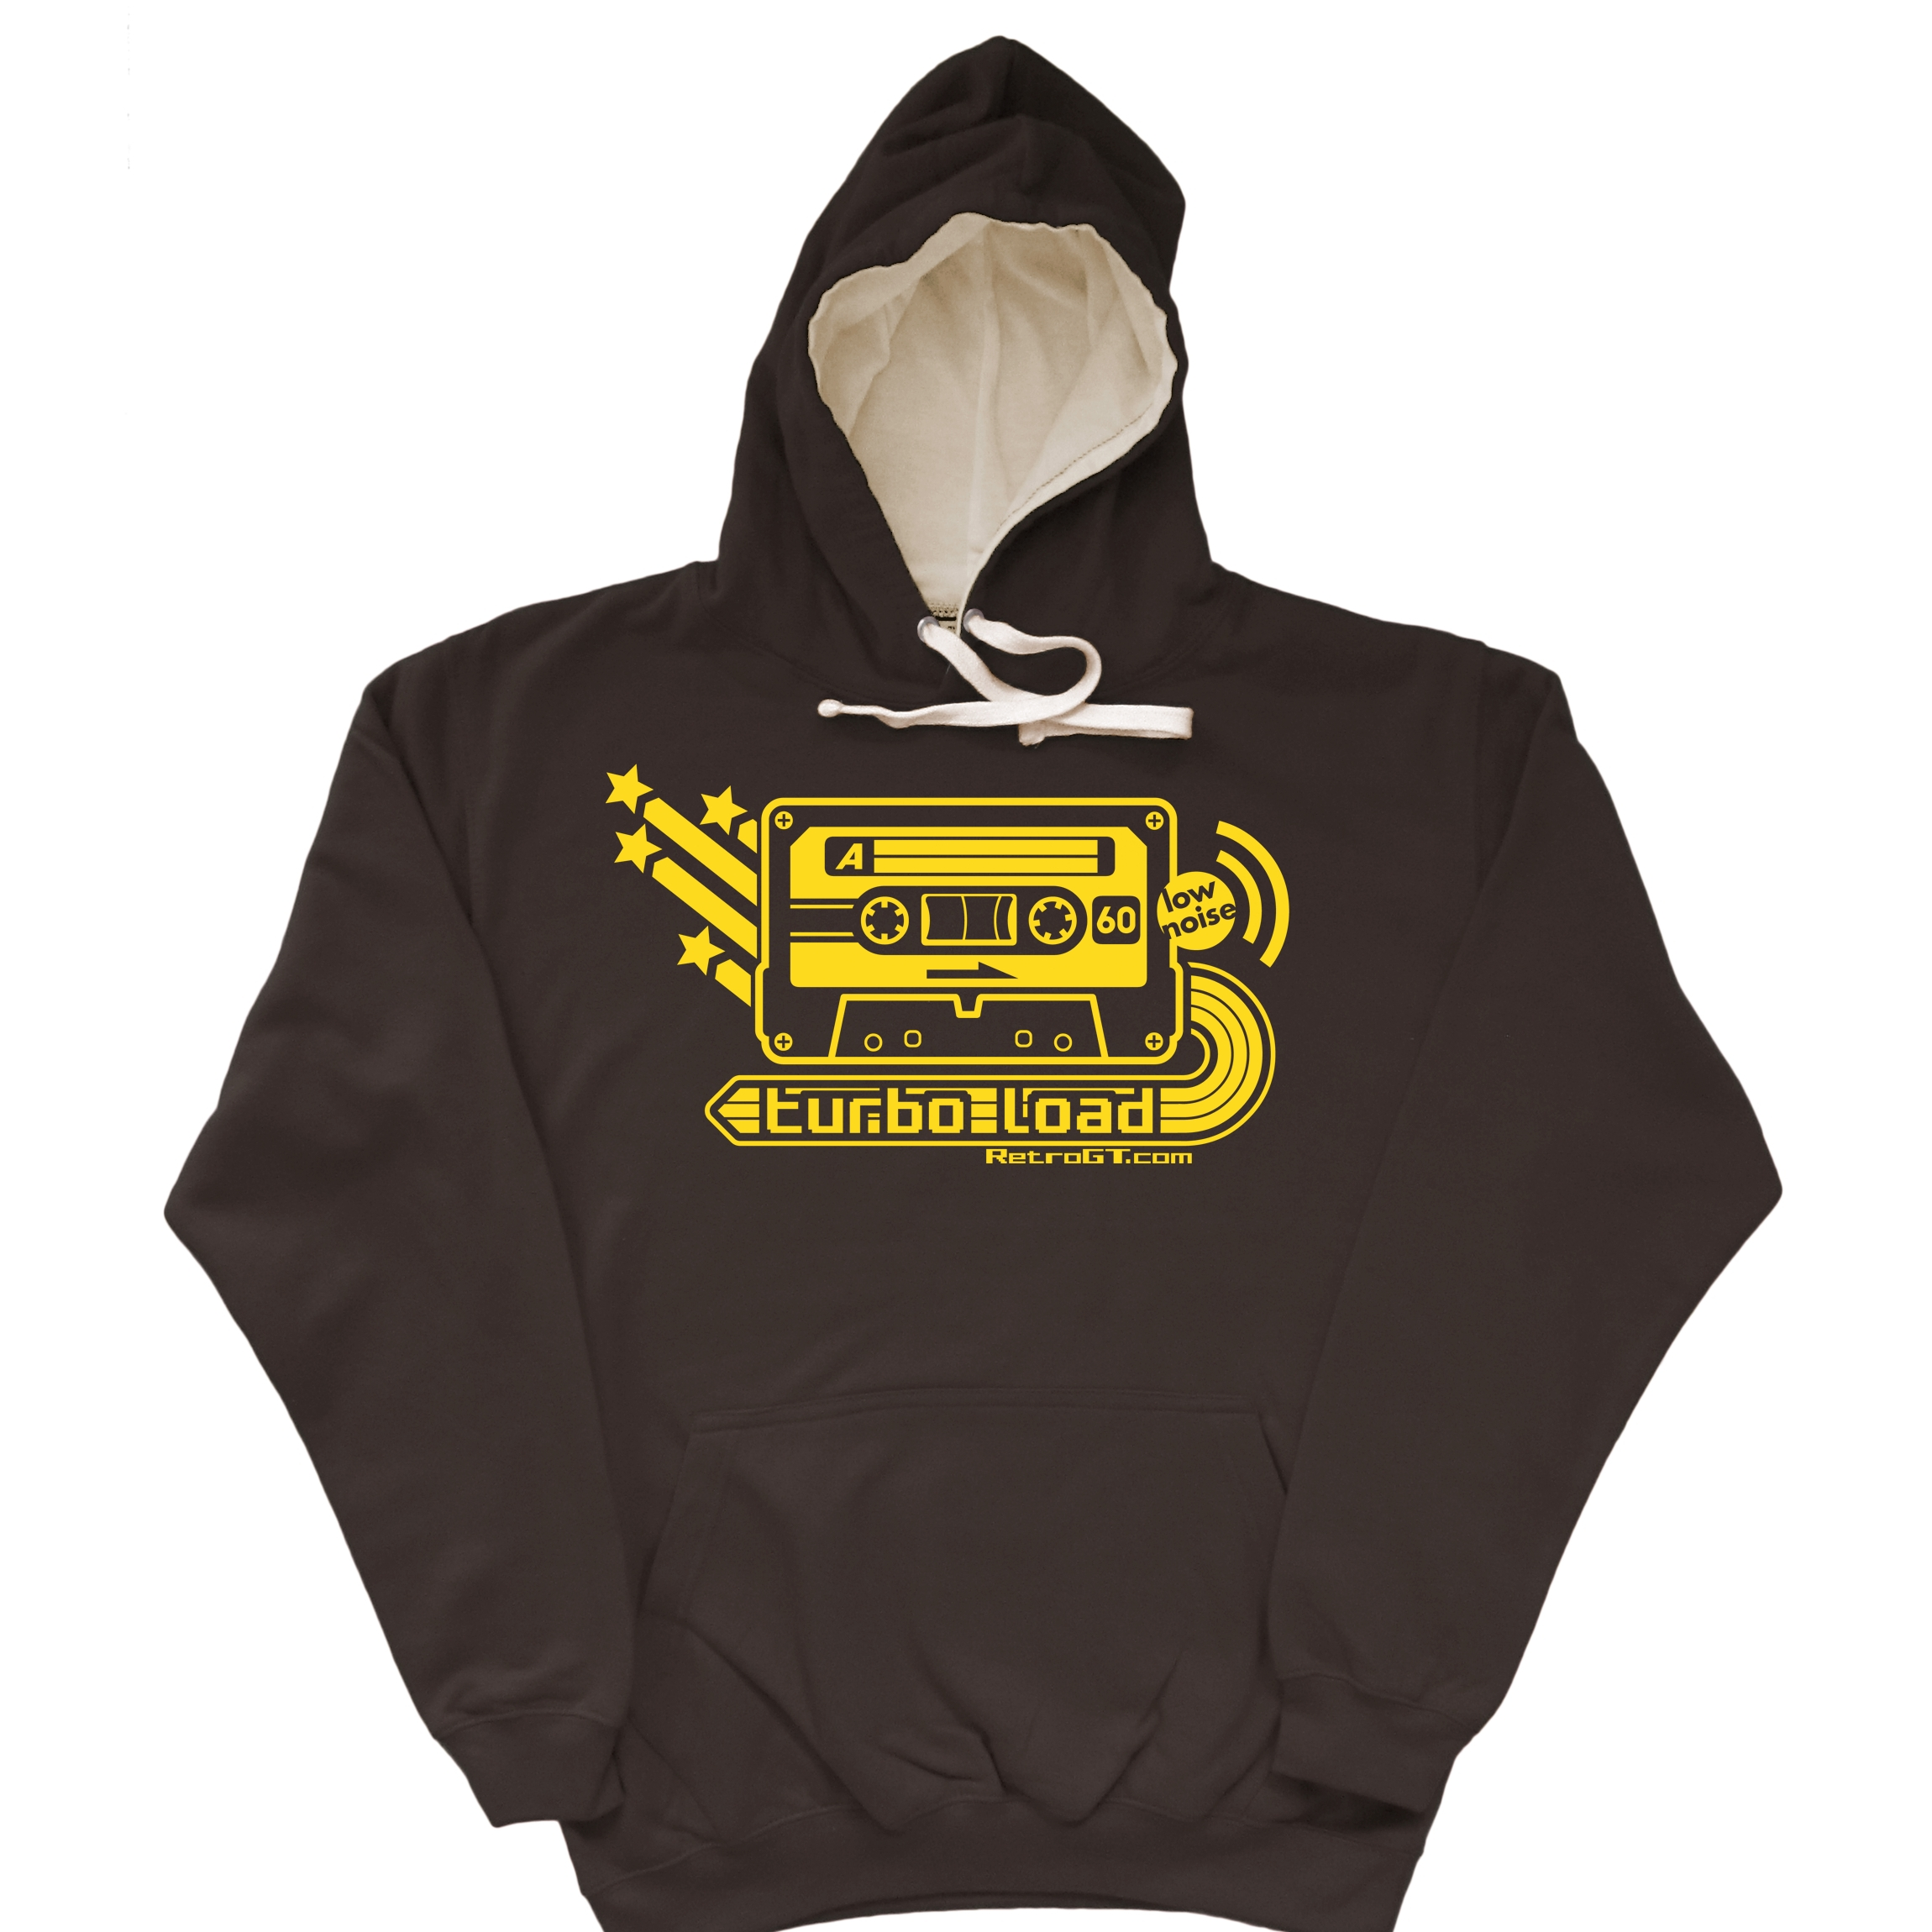 Photograph: Cassette Tape Hoodie